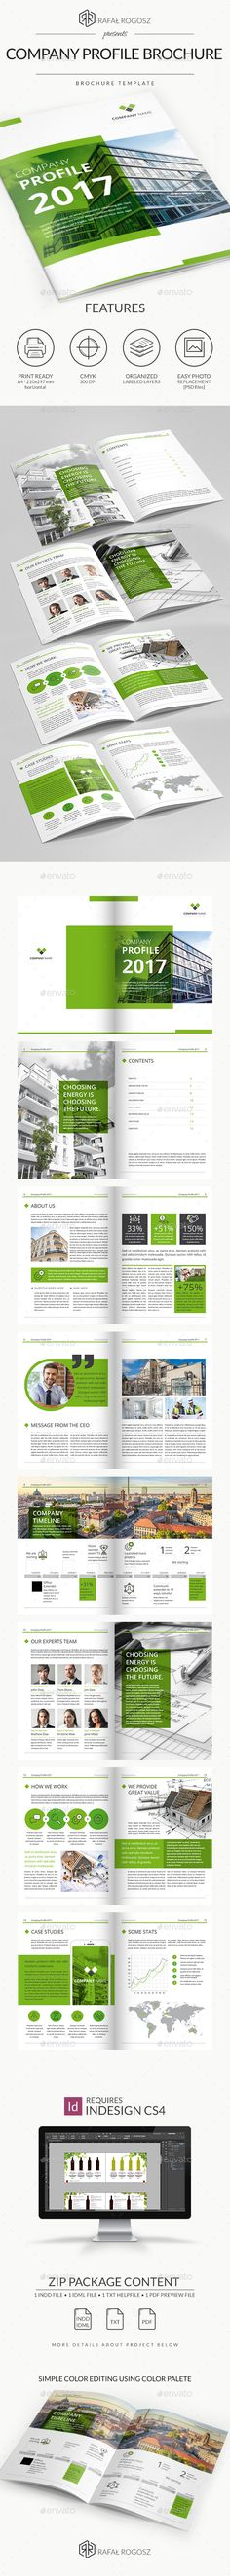 Company Profile brochure 2017 vol2 - #Corporate #Brochures Download here: https://graphicriver.net/item/company-profile-brochure-2017-vol2/19386550?ref=alena994